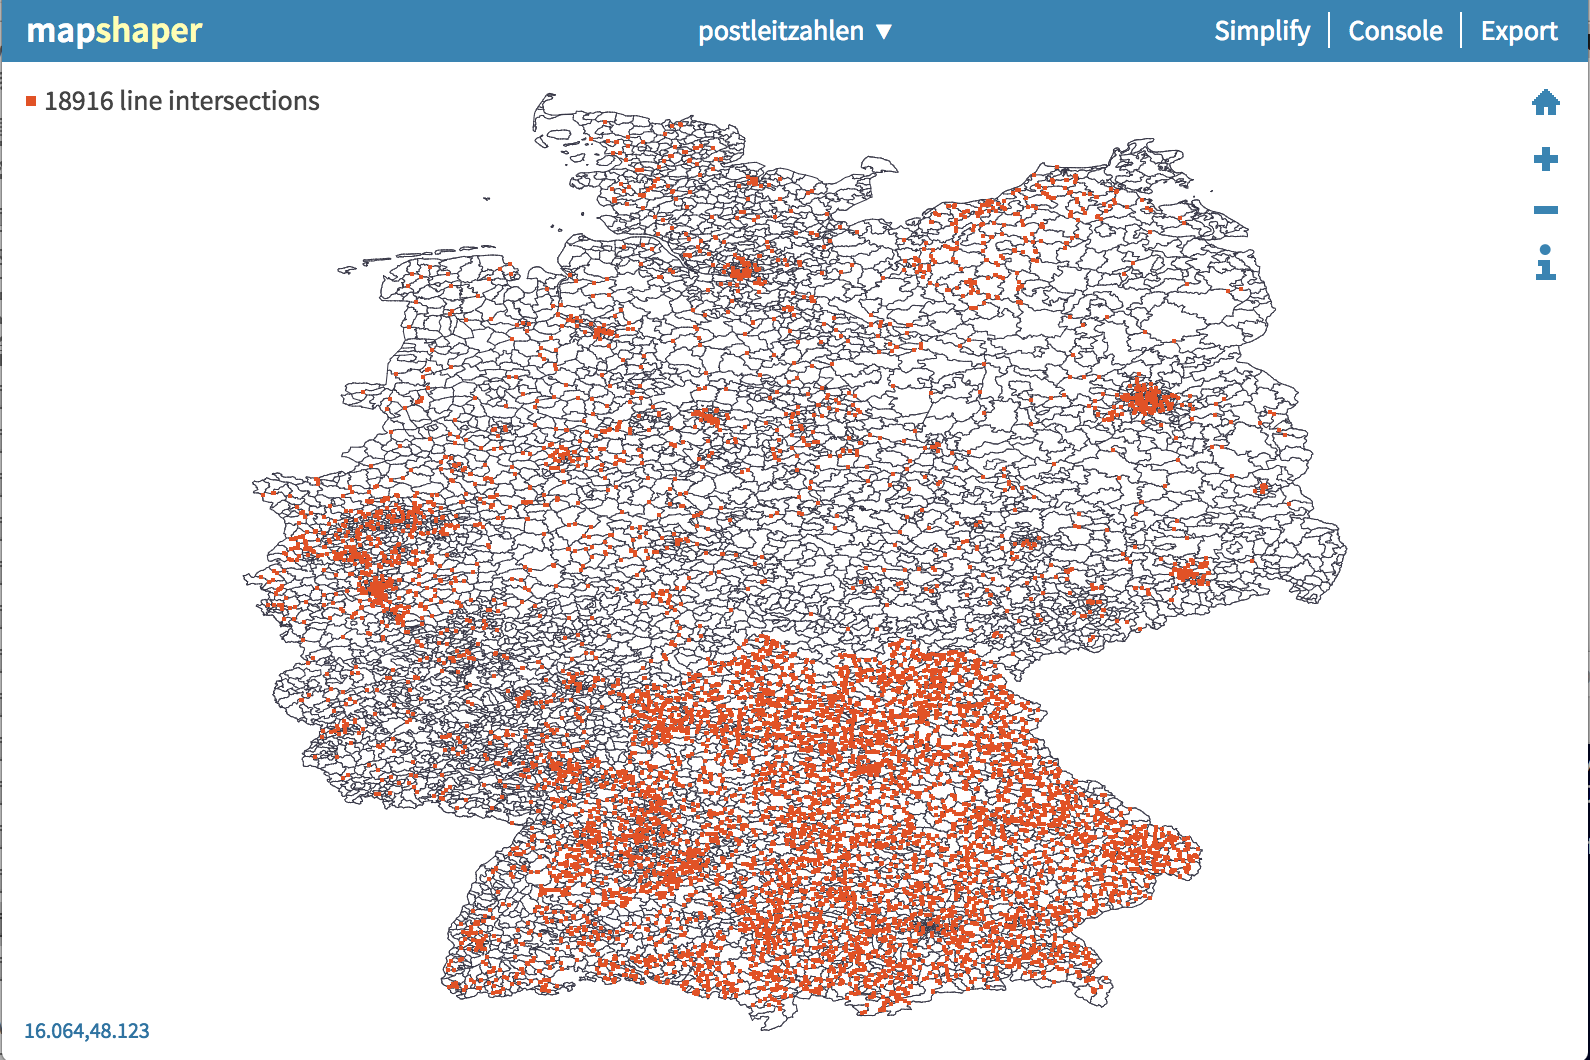 GeoJSON dissolve output in the browser differs from node